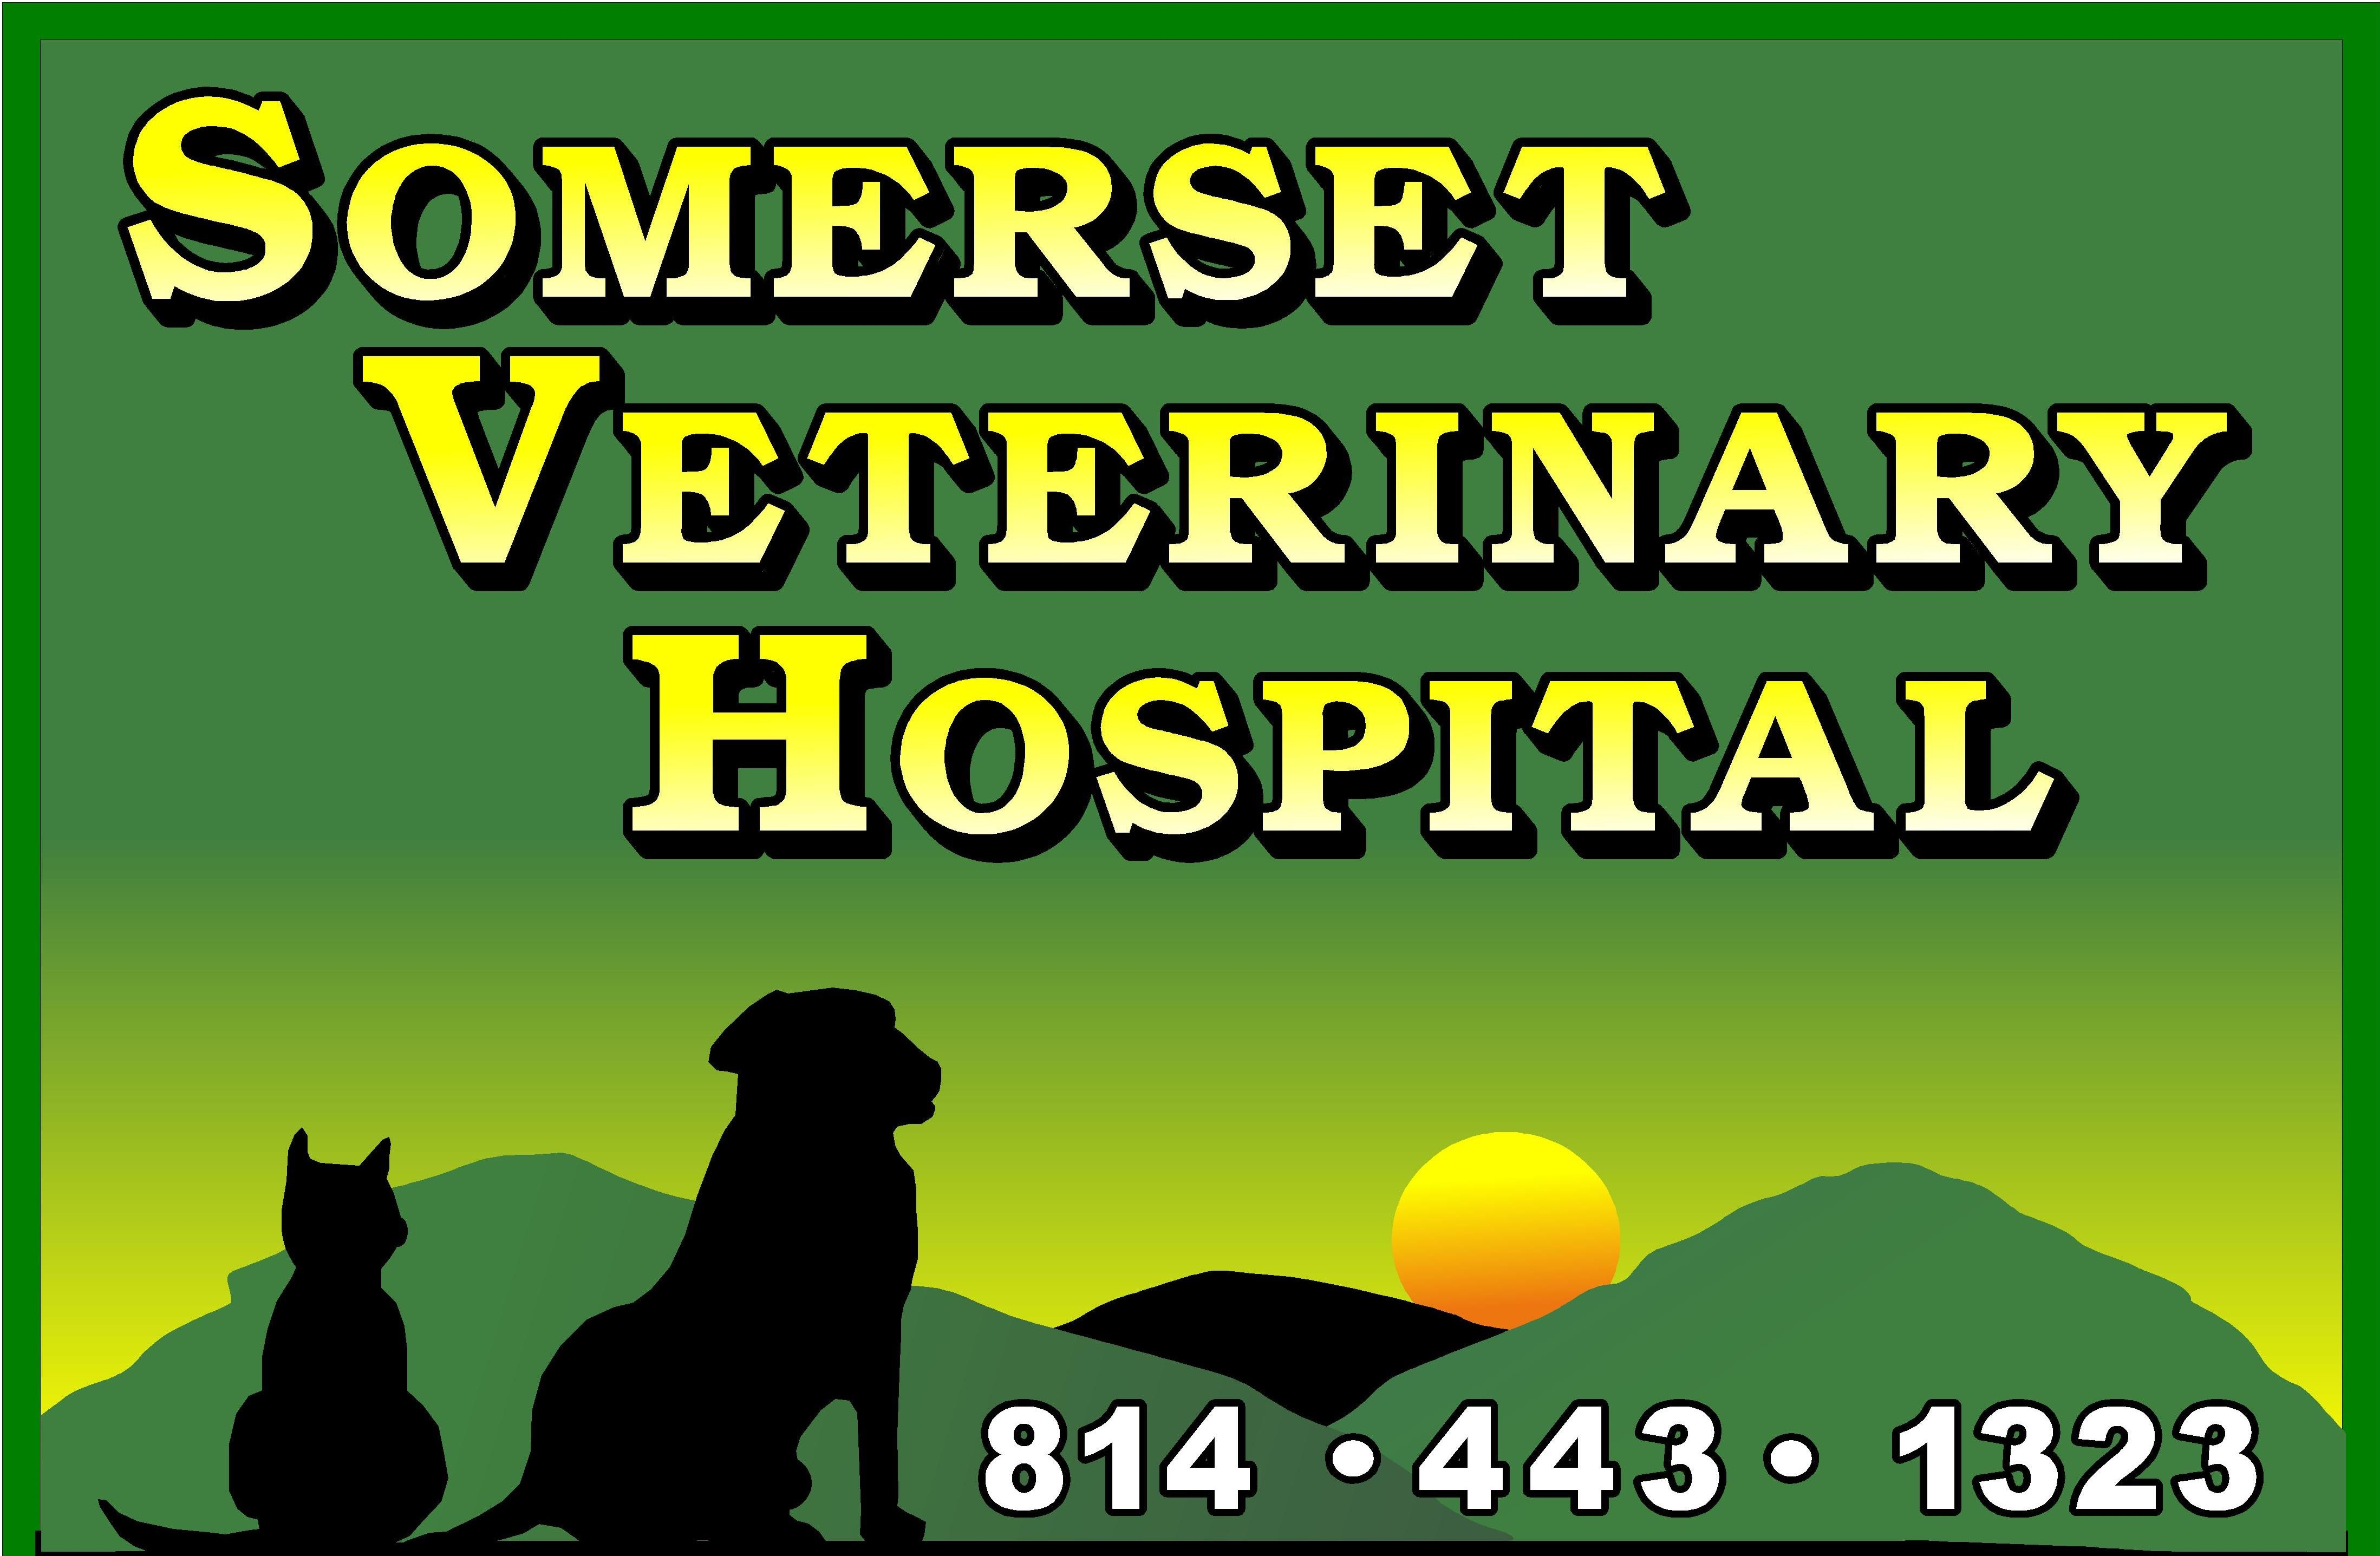 Somerset Veterinary Hospital